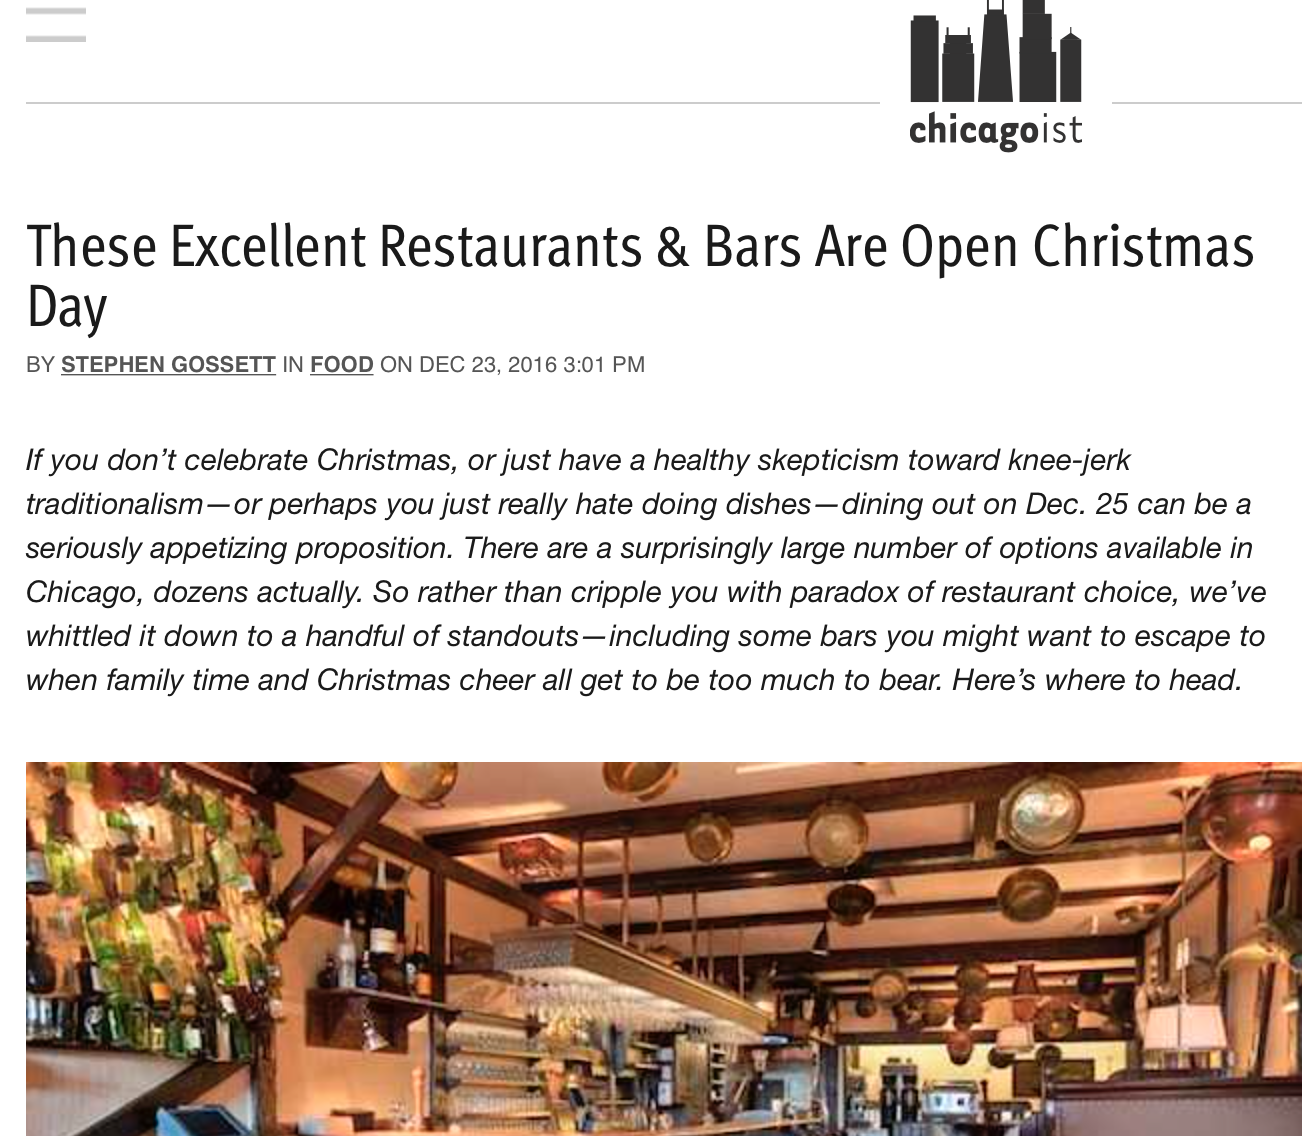 these excellent restaurants bars are open christmas day premier arcade bar craft beer event venue - Chicago Restaurants Open On Christmas